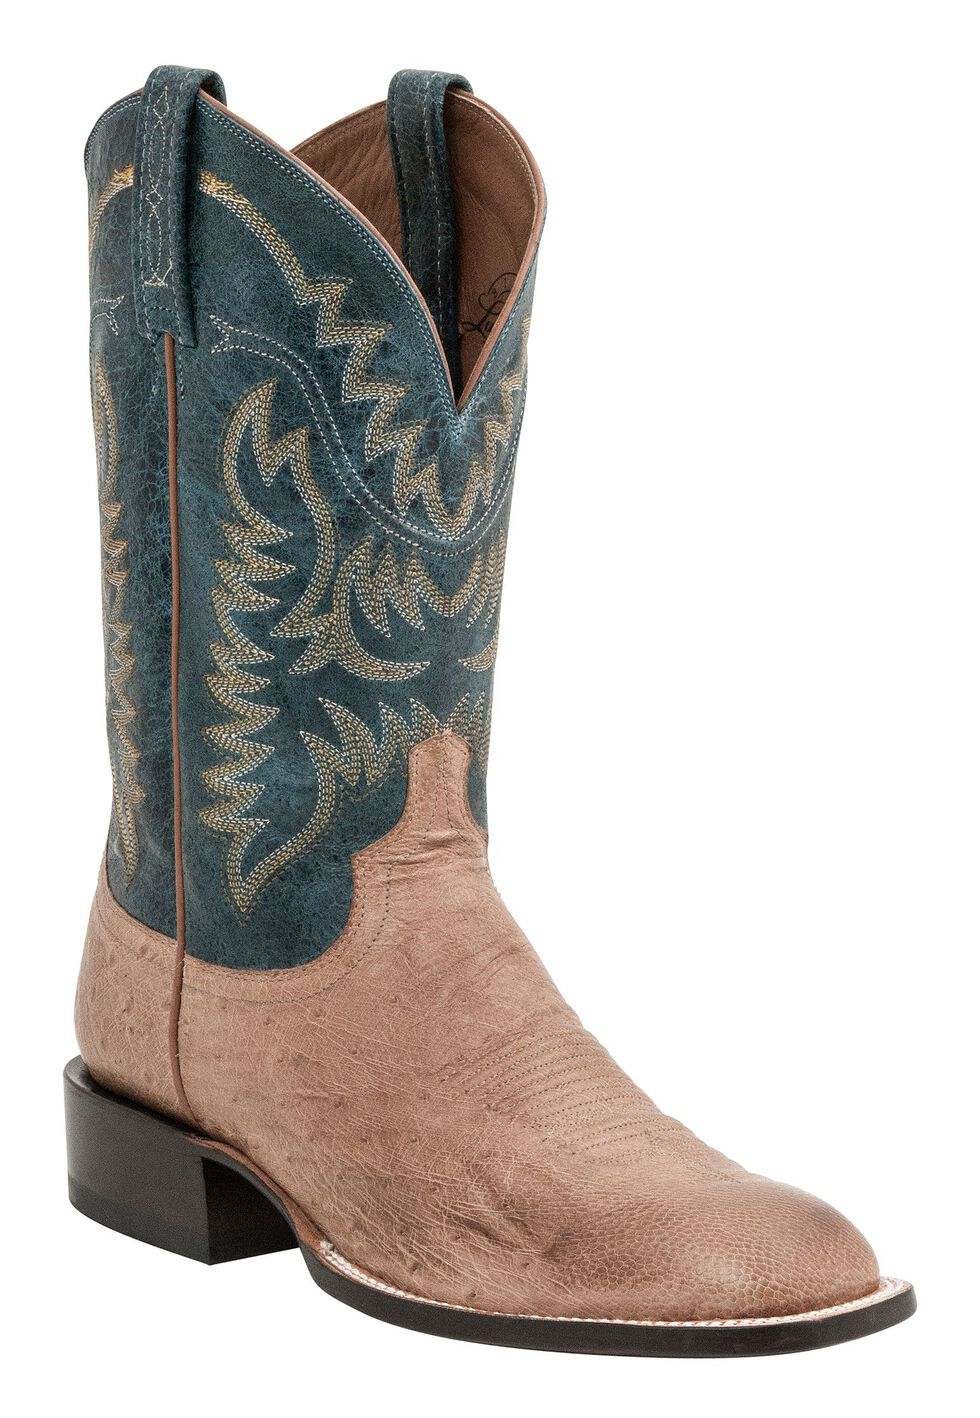 Lucchese Handcrafted 1883 Burt Smooth Ostrich Cowboy Boots - Square Toe, Tan, hi-res